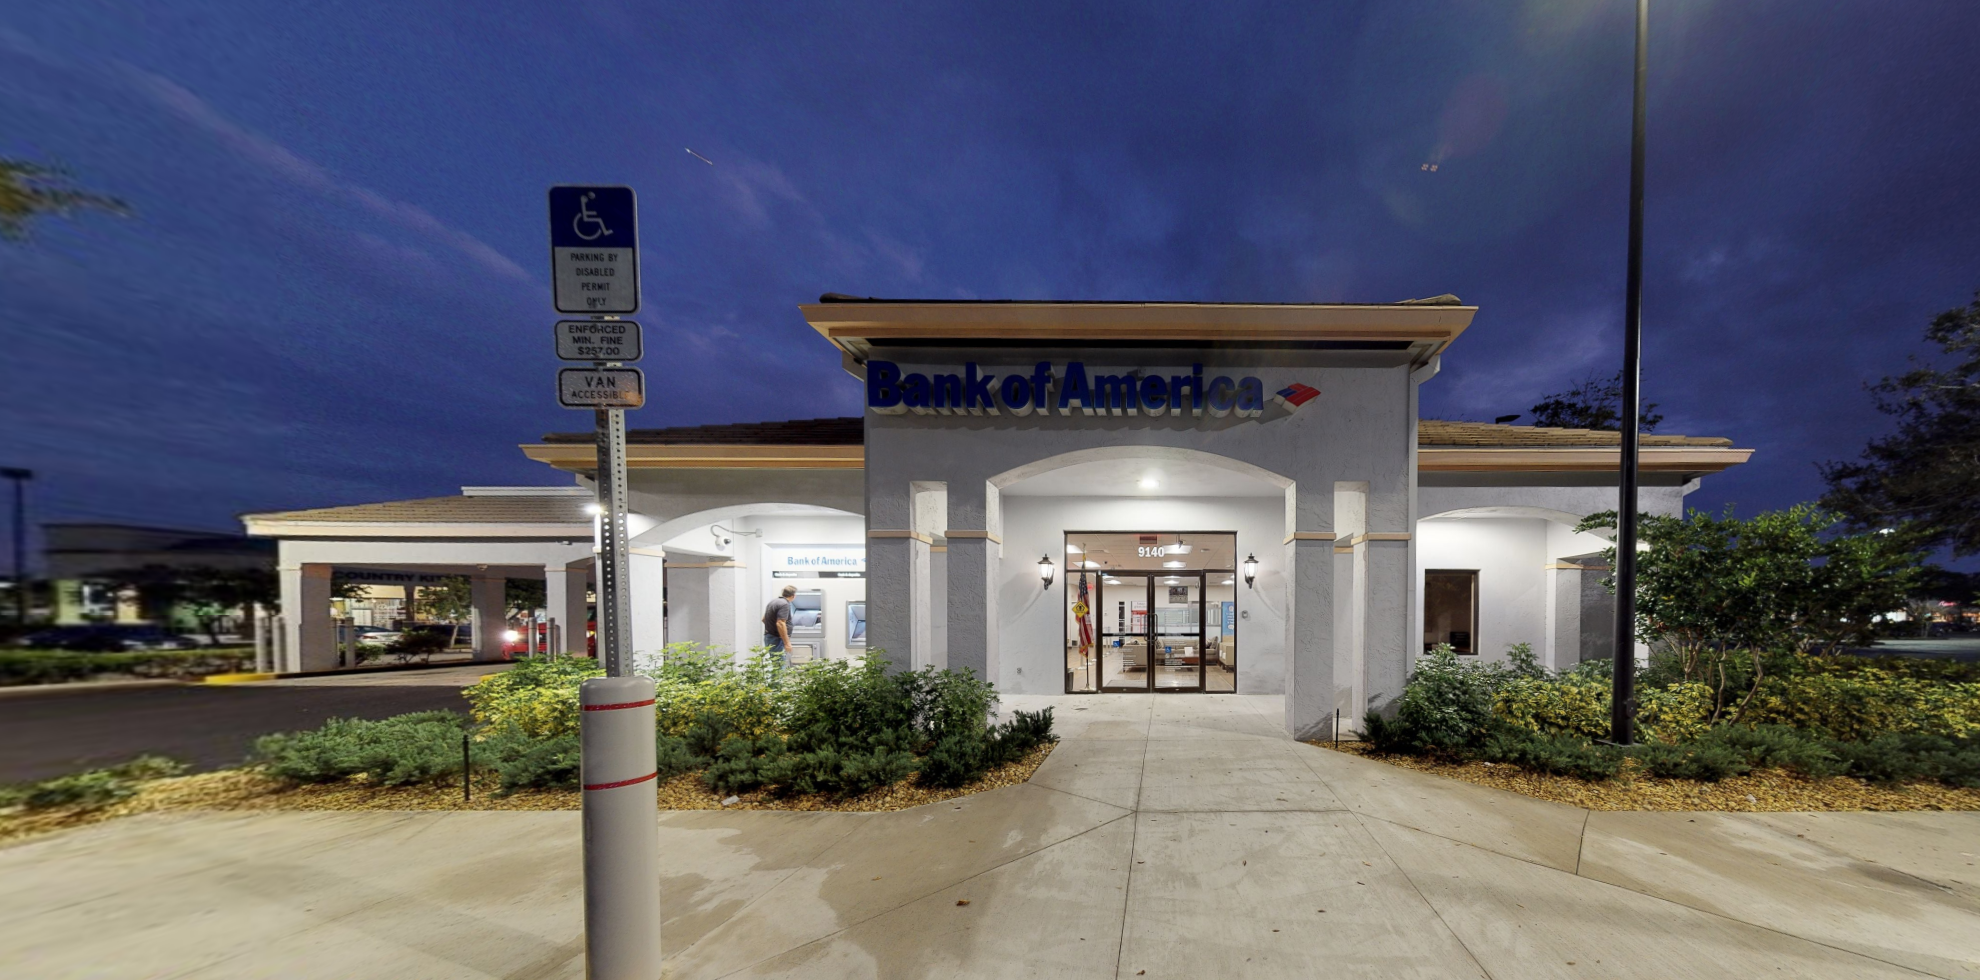 Bank of America financial center with drive-thru ATM | 9140 Wiles Rd, Coral Springs, FL 33067